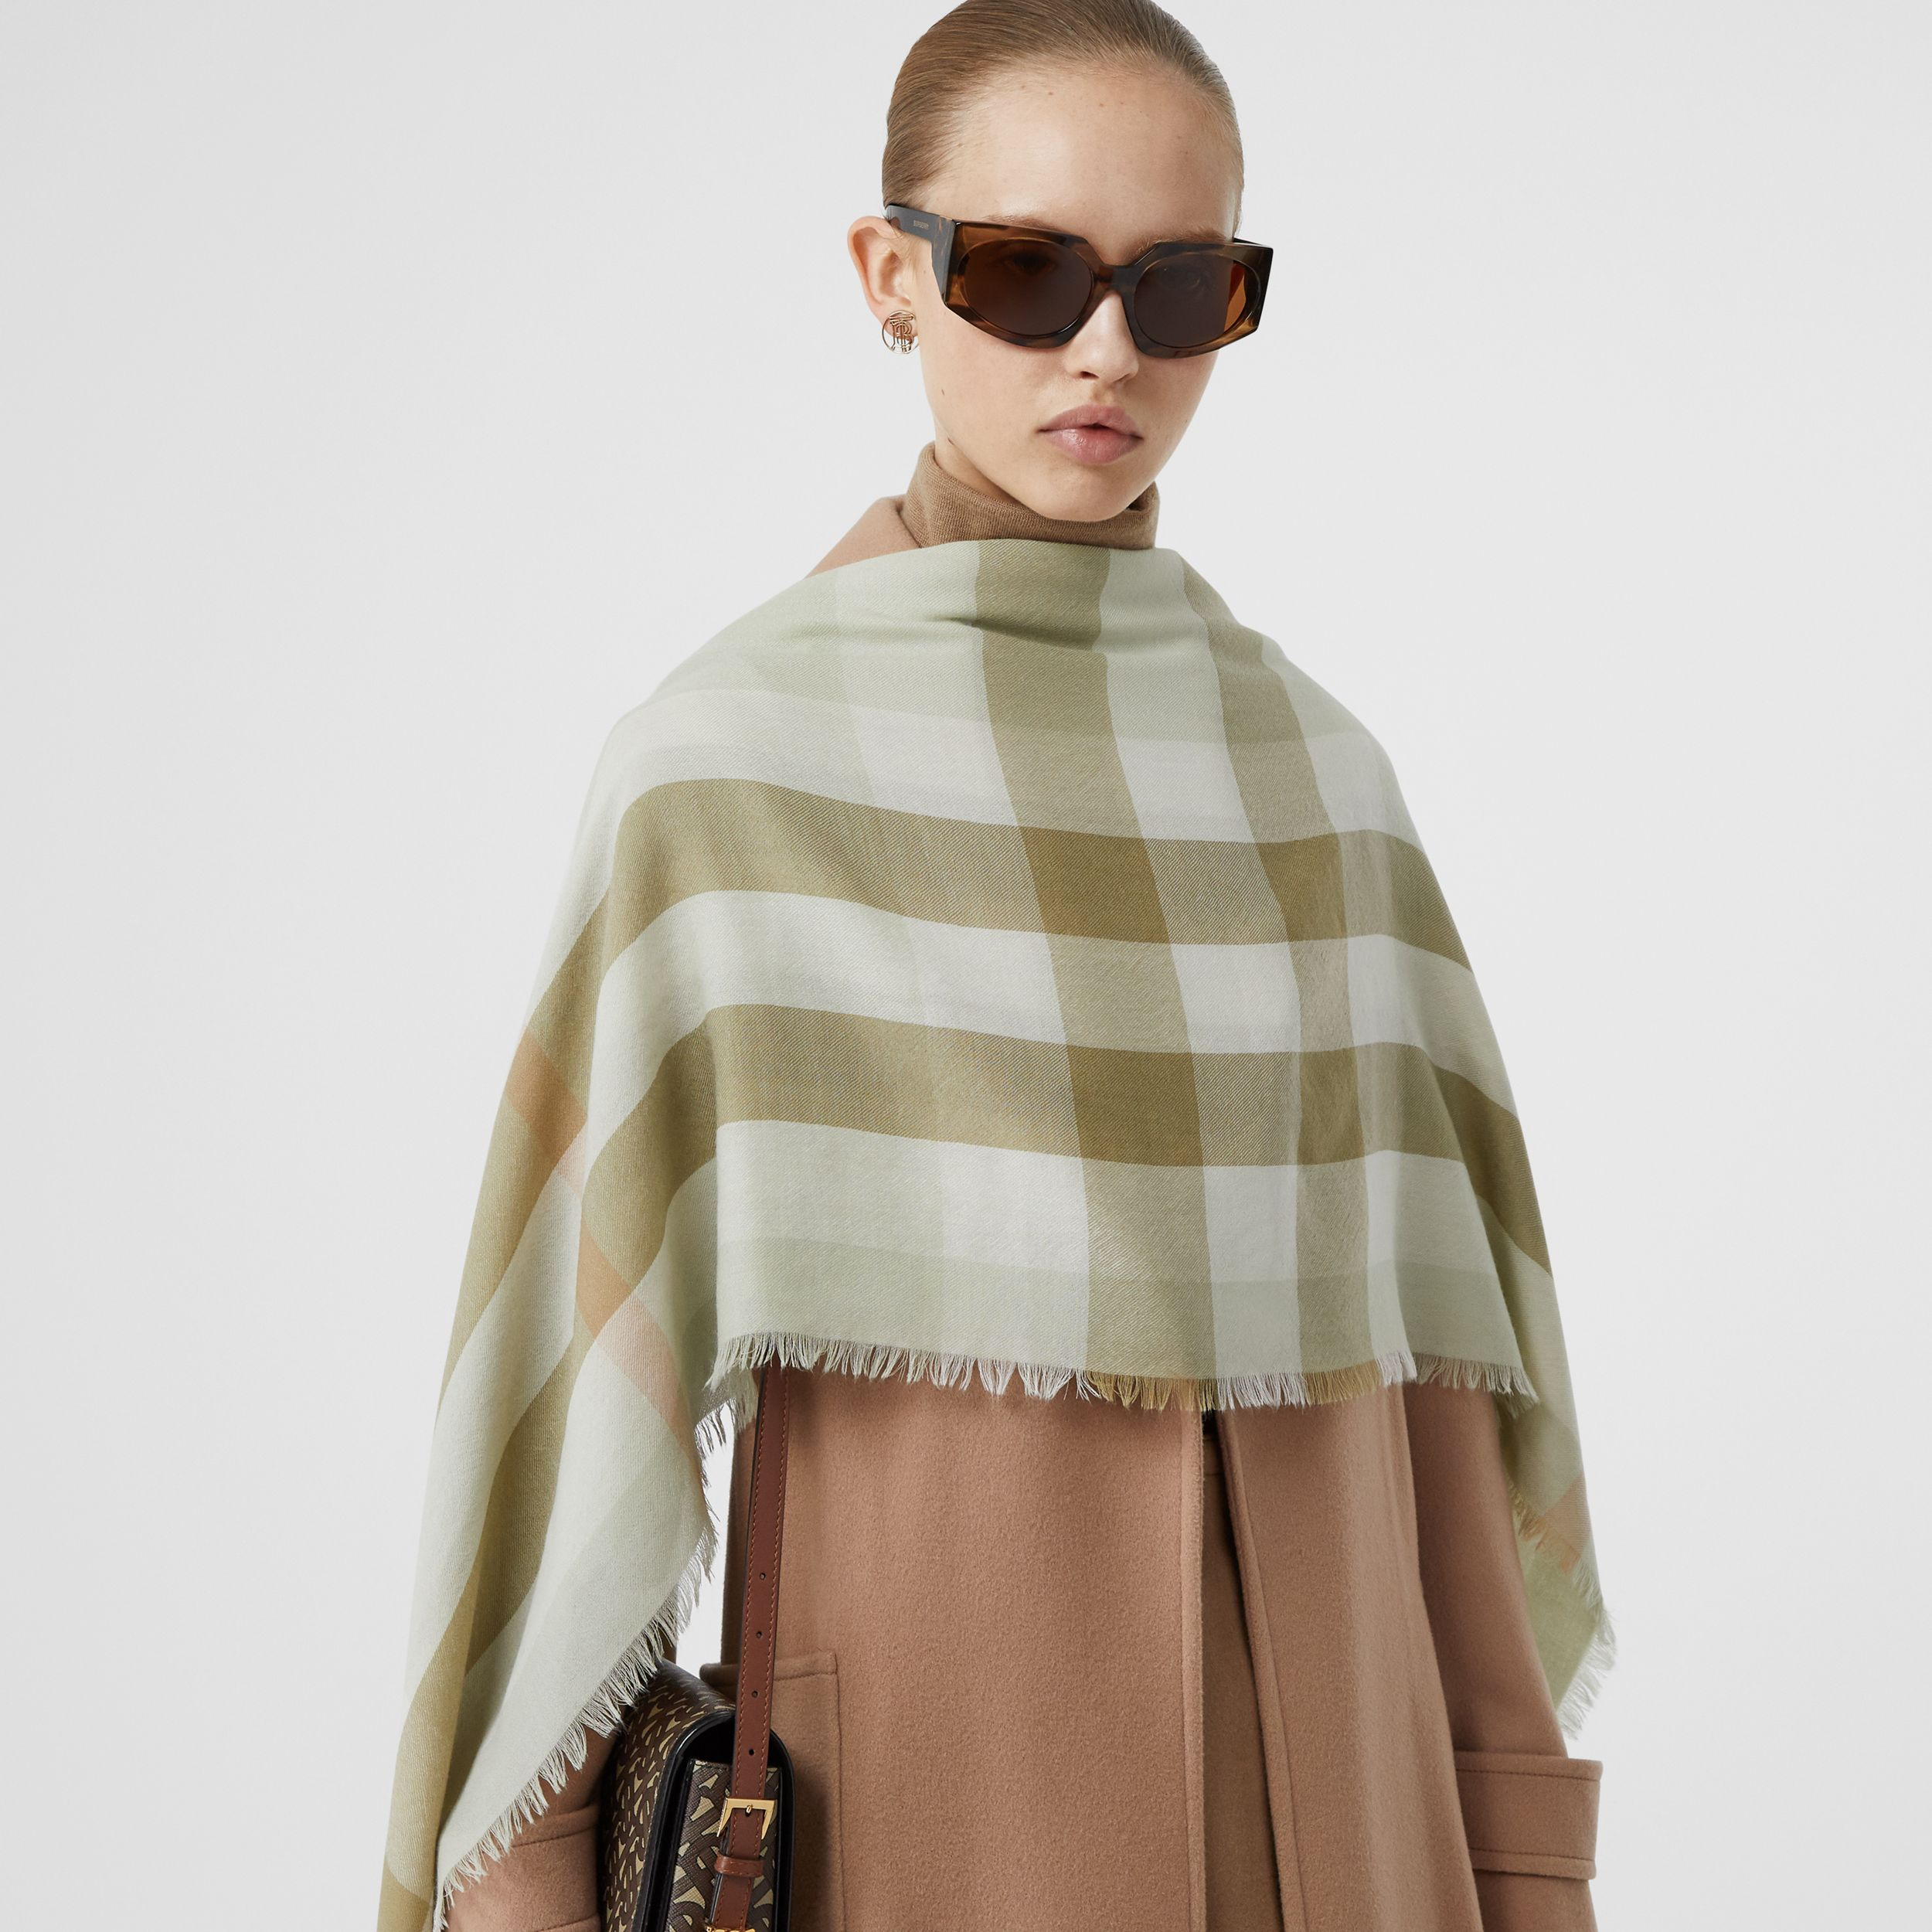 Lightweight Check Cashmere Scarf in Pale Apple Green | Burberry - 3